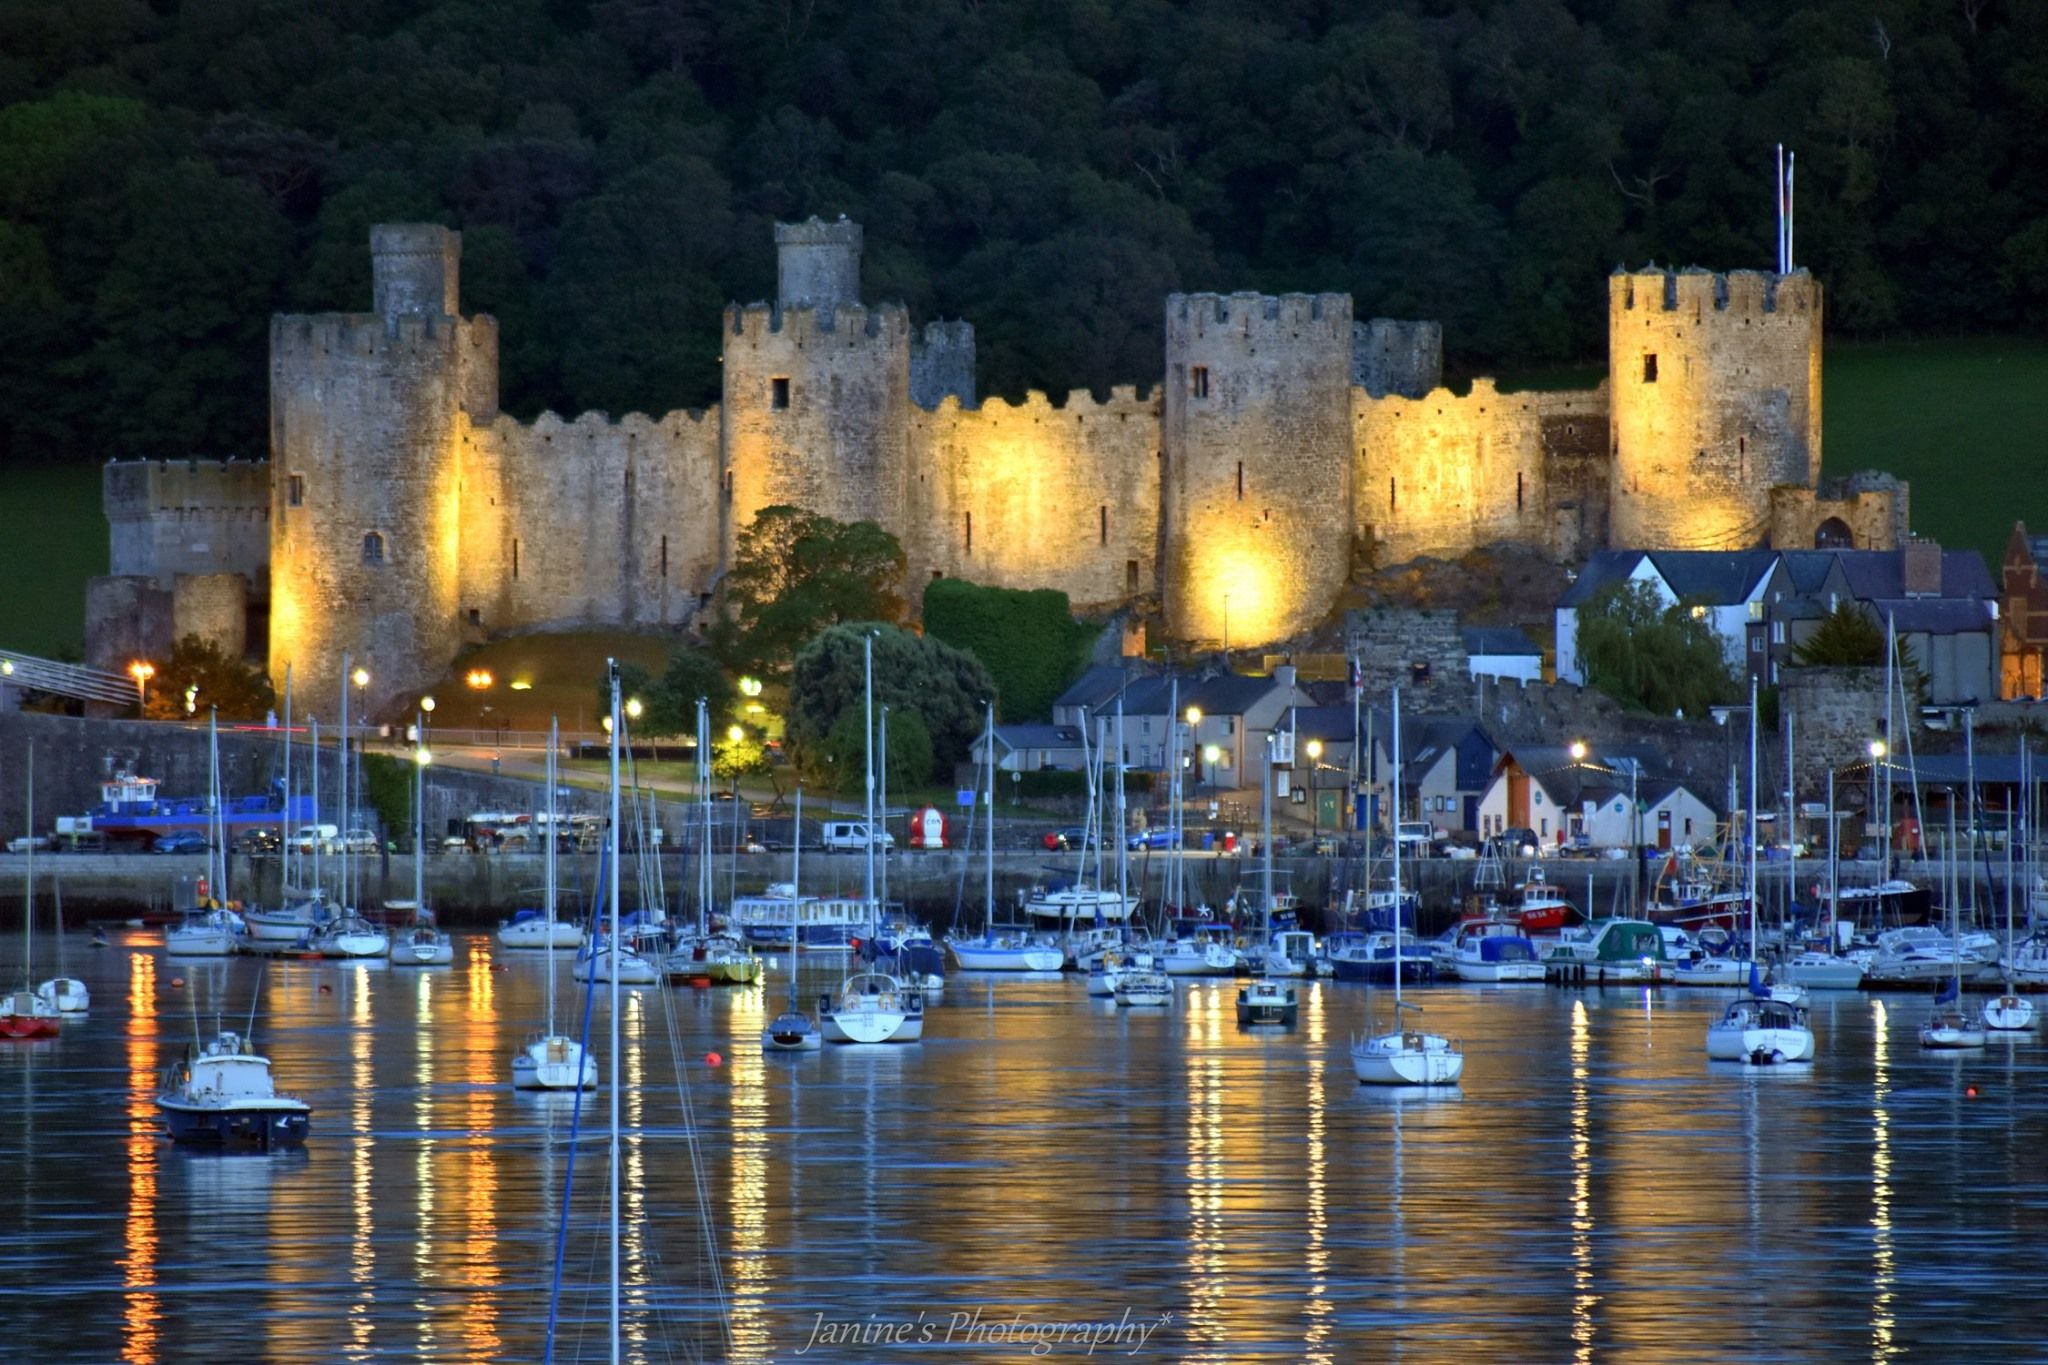 Castell Conwy / Conwy Castle. (With images) Conwy